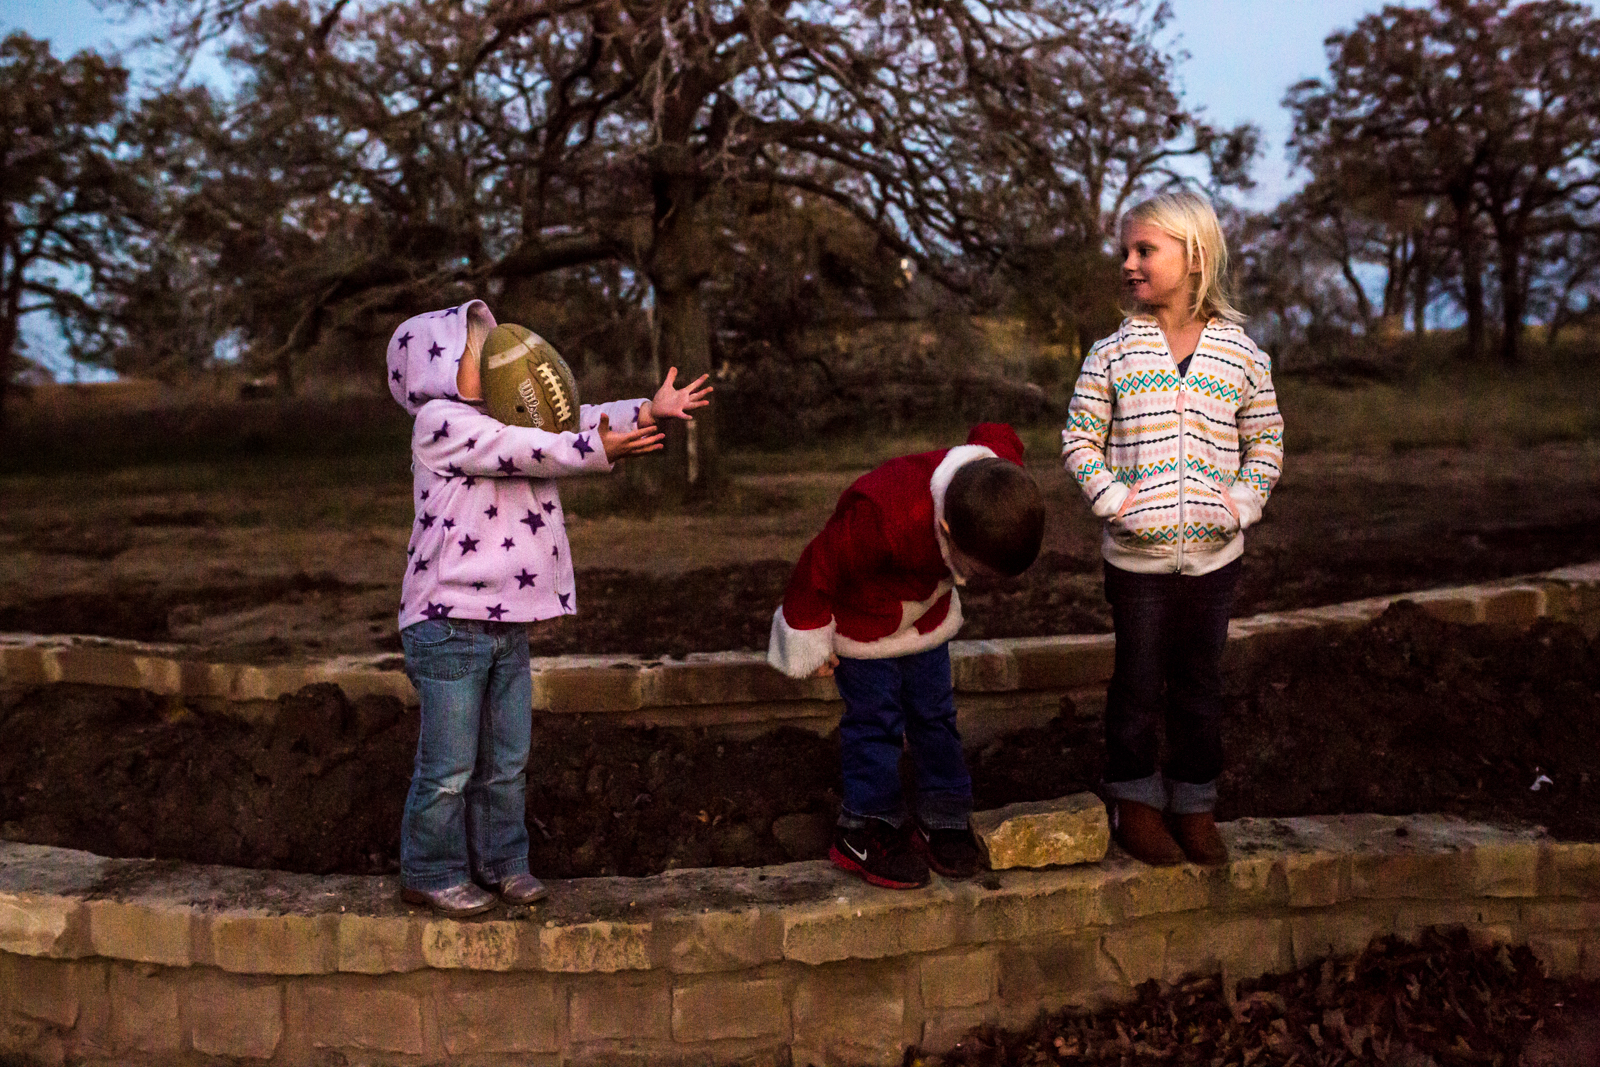 Dallas Texas Family Photographer Lawren Rose Photography captures a photo of three kids standing outside with one getting hit in the face by a football